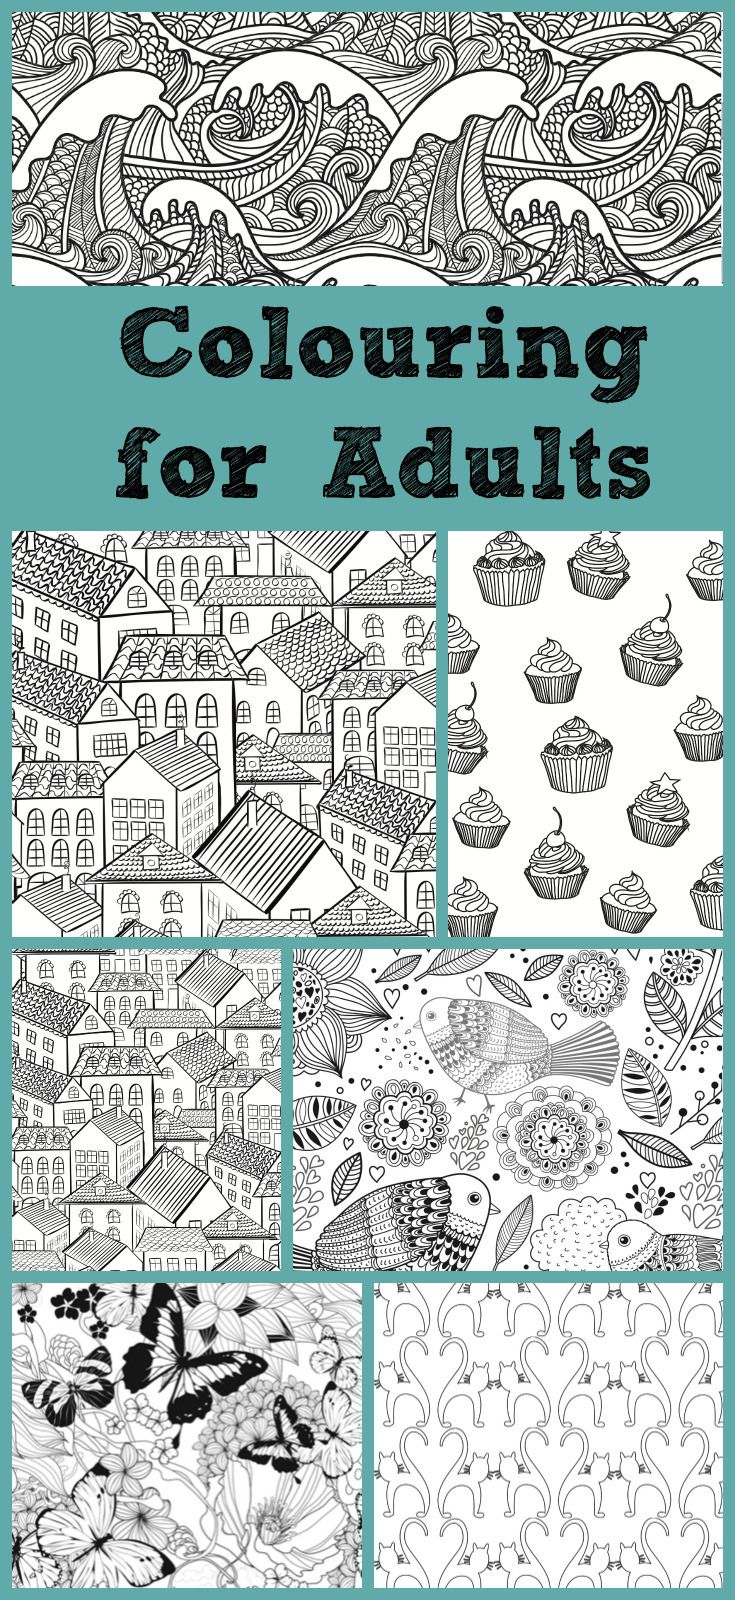 Best grown up coloring books - Colouring For Adults Grown Up Colouring Pages Are The New Craze For Stress Relief